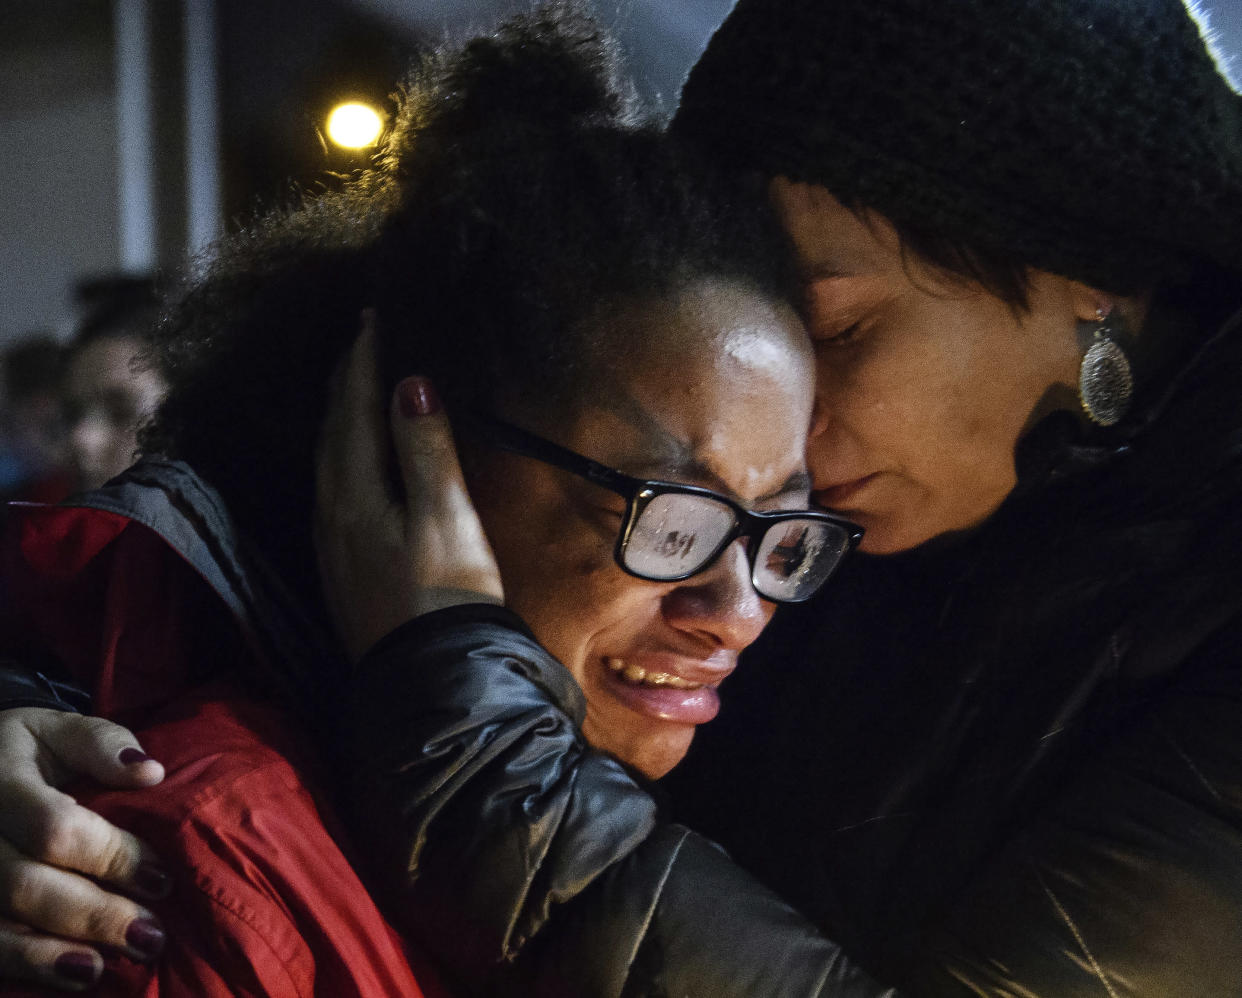 Isabel Kinnane Smith of Allderdice High School is comforted by math teacher Lesley Britton at a vigil blocks from where a shooter killed 11 people at the Tree of Life synagogue on Oct. 27, 2018. (Photo: Stephanie Strasburg/Pittsburgh Post-Gazette via AP)